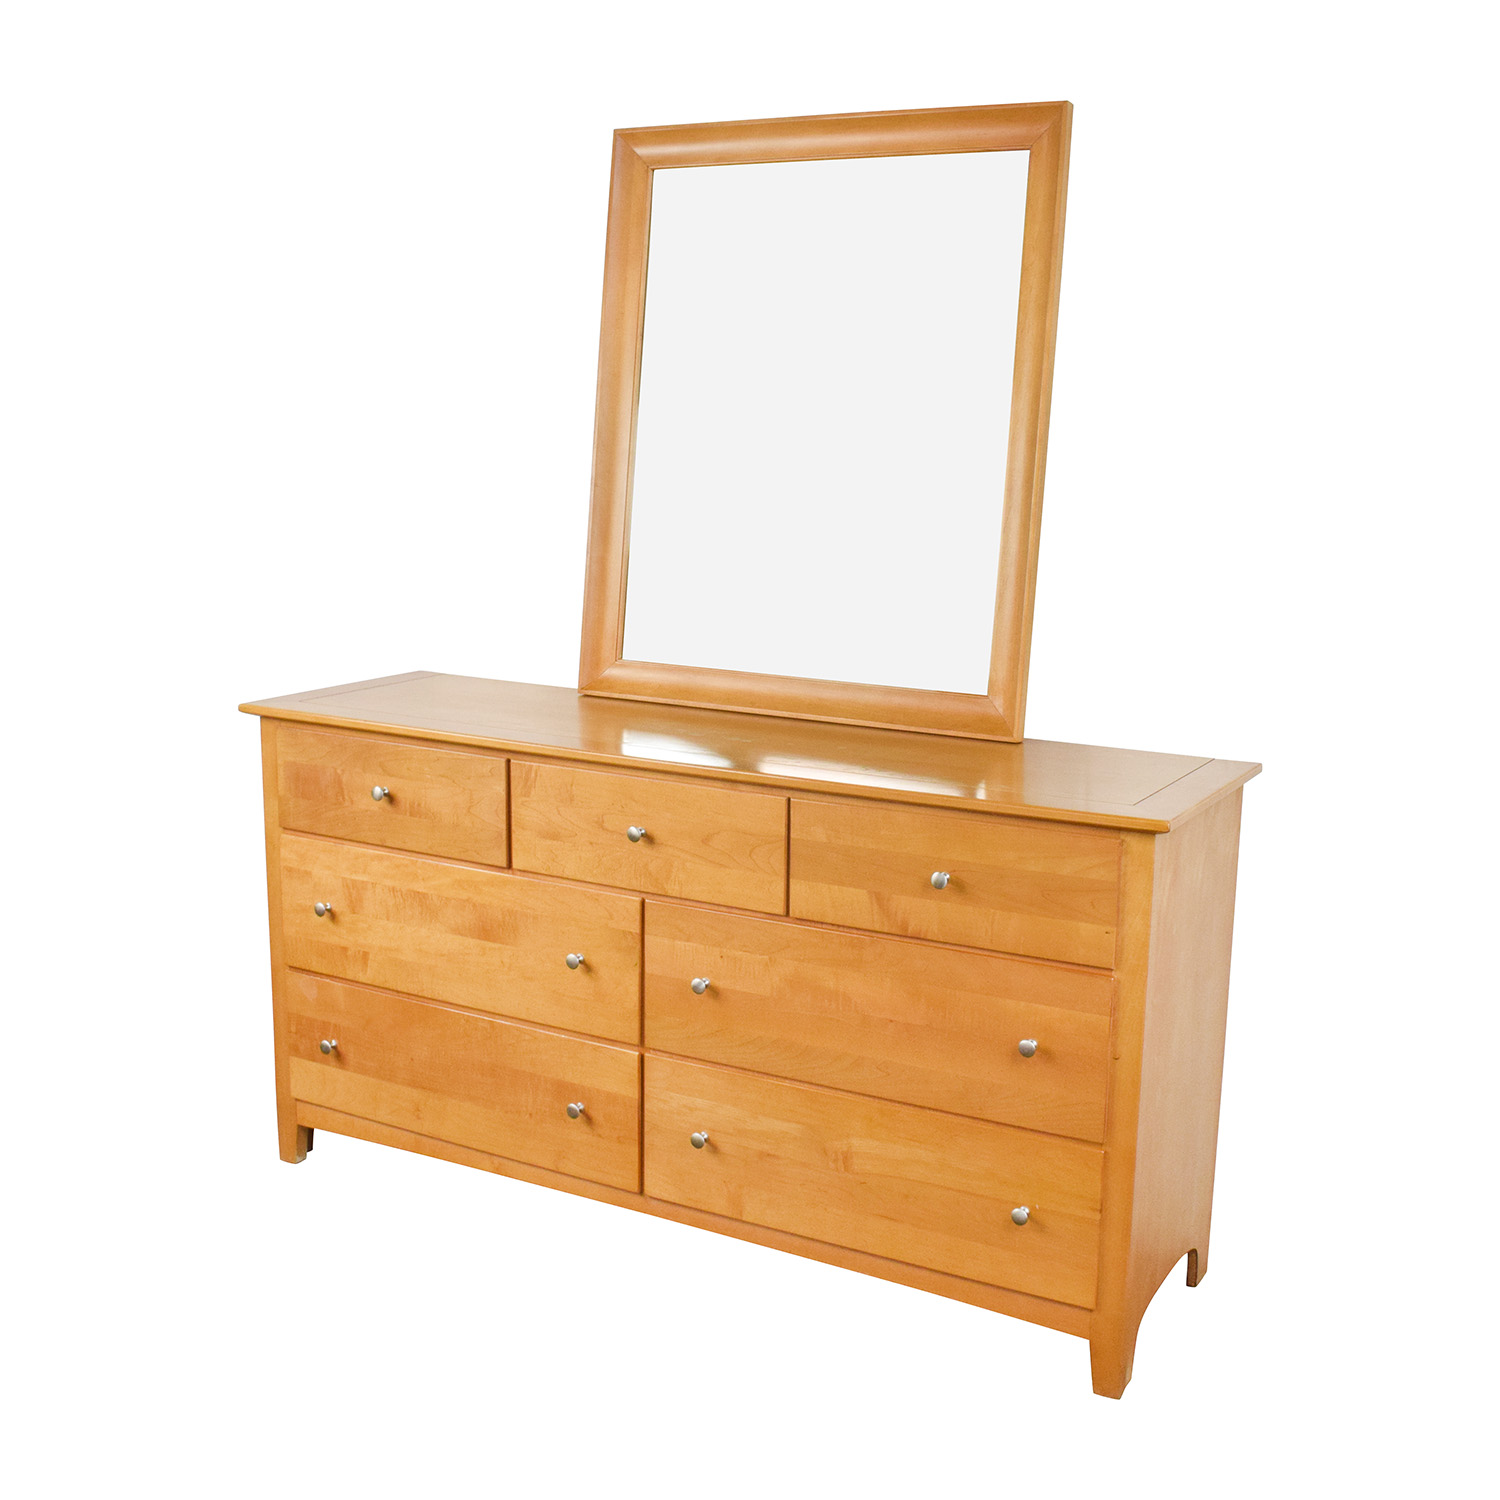 Maple Wood Furniture ~ Maple wood dresser bestdressers